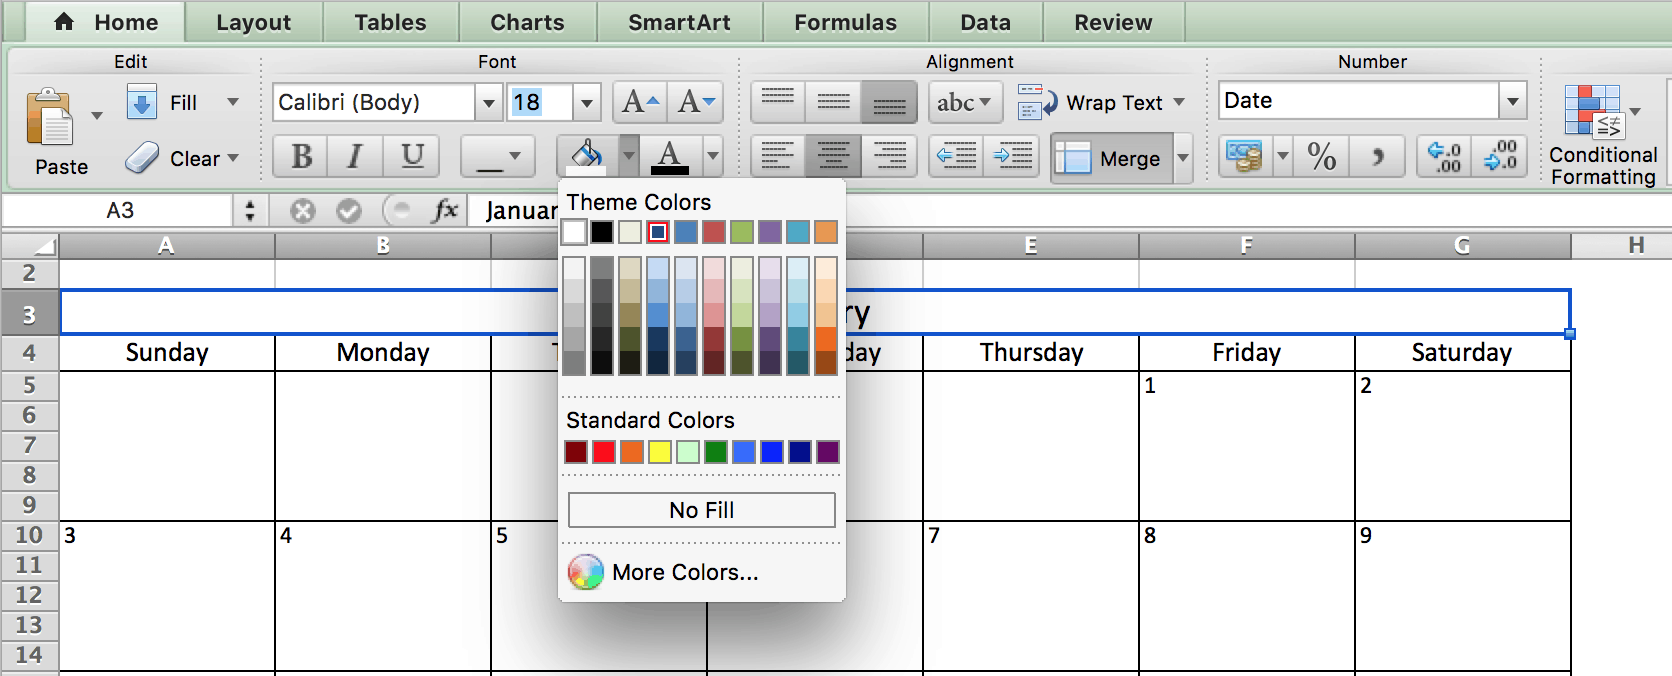 Ediblewildsus  Gorgeous Make A  Calendar In Excel Includes Free Template With Likable Choosing Colors  Calendar In Excel With Astounding How To Freeze A Row In Excel Also How To Label Axis On Excel In Addition Microsoft Excel  And Excel Count Unique As Well As Average Function In Excel Additionally Excel Spreadsheet Templates From Smartsheetcom With Ediblewildsus  Likable Make A  Calendar In Excel Includes Free Template With Astounding Choosing Colors  Calendar In Excel And Gorgeous How To Freeze A Row In Excel Also How To Label Axis On Excel In Addition Microsoft Excel  From Smartsheetcom